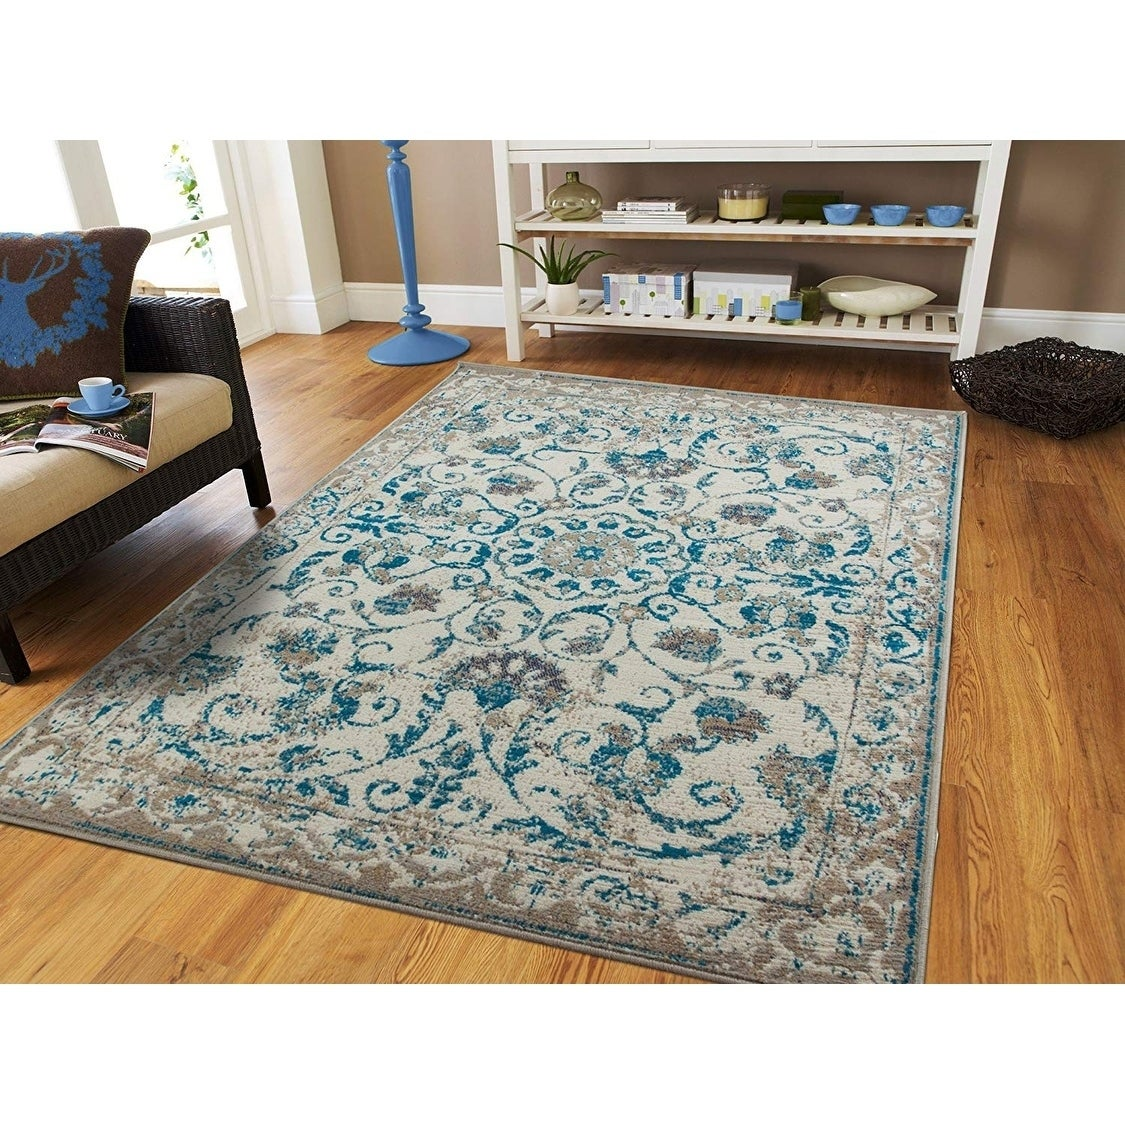 Copper Grove Vannes Modern Distressed Blue and Grey Floral Area Rug